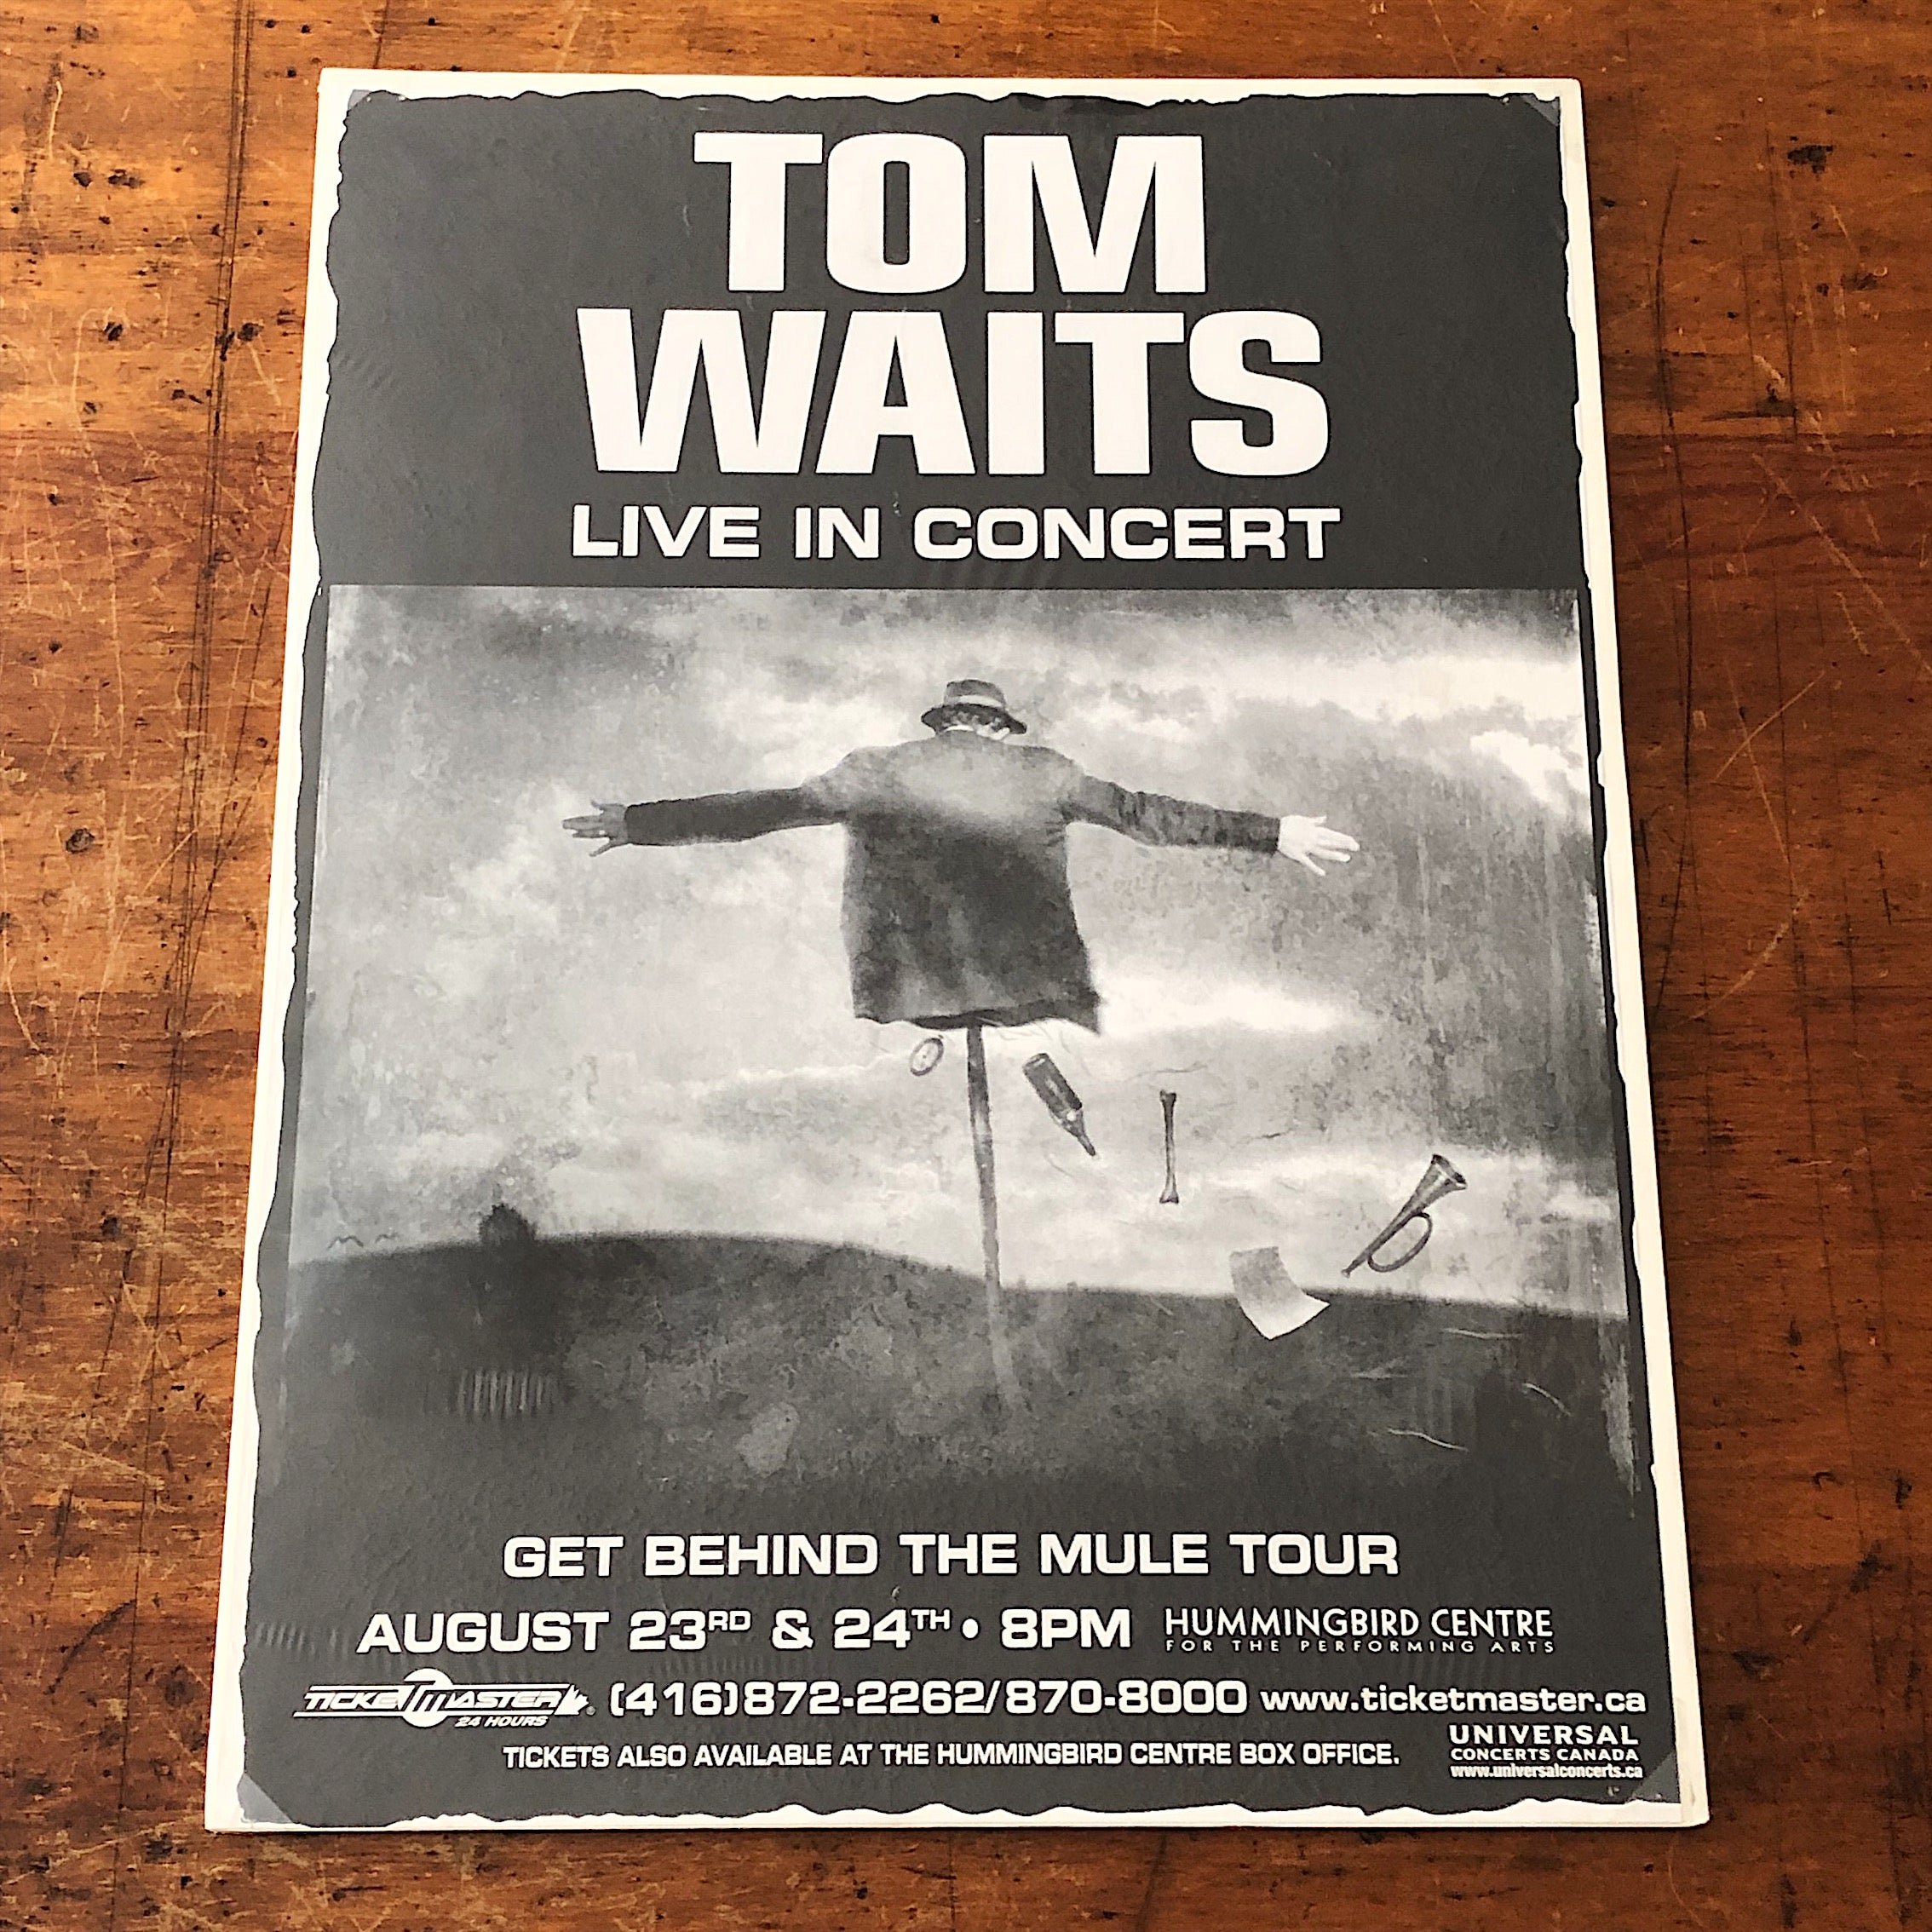 "Tom Waits Concert Poster from 1999 - Get Behind the Mule Tour - Toronto Canada Shows - Rare Rock Memorabilia - 24"" x 17"""